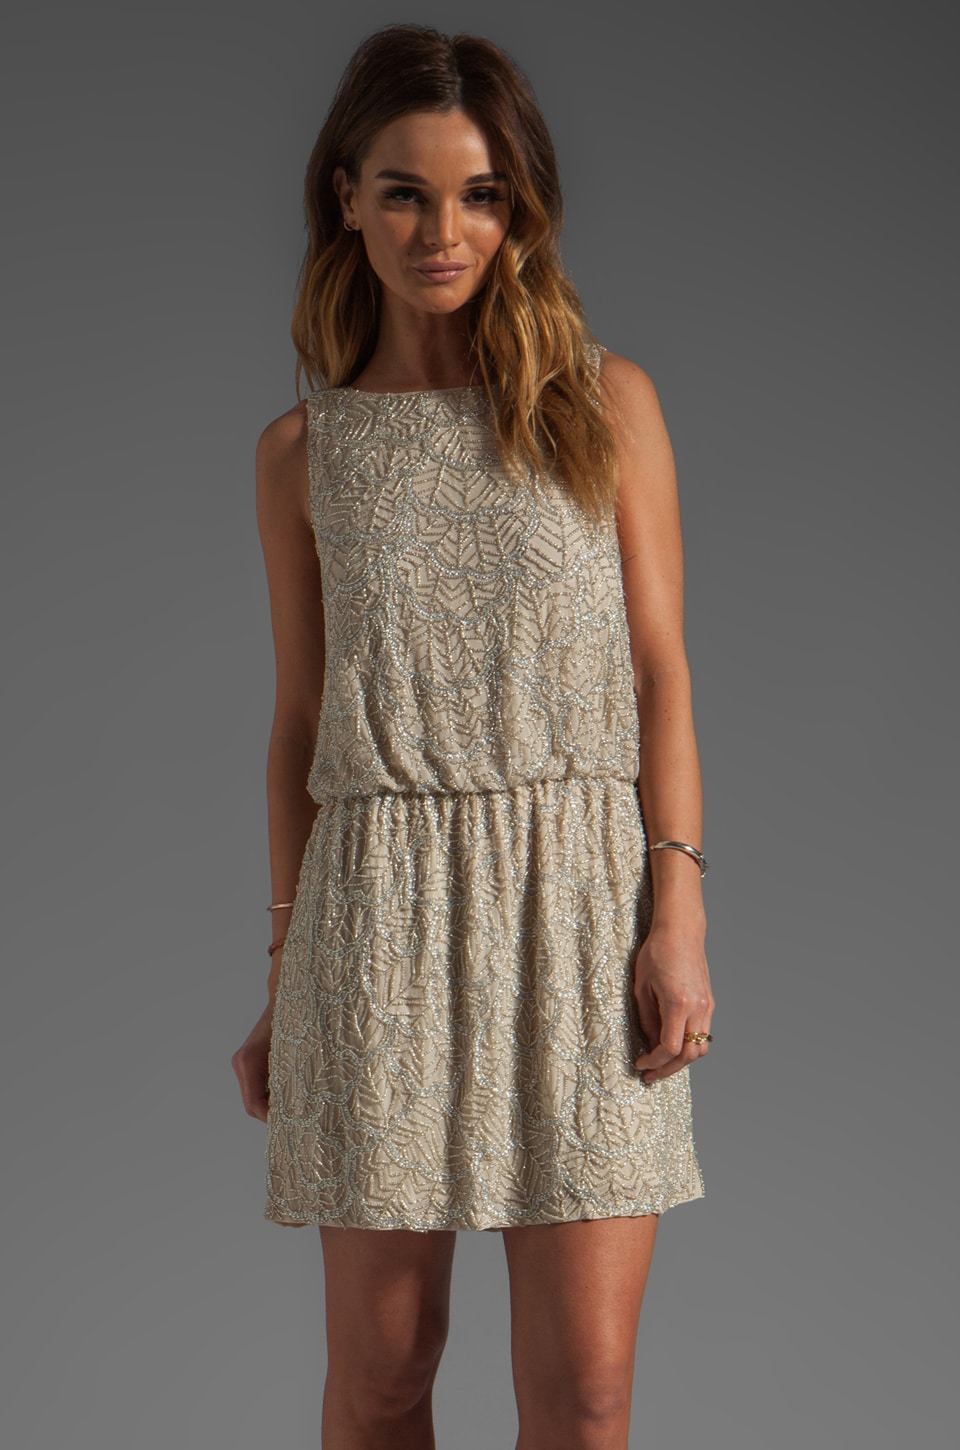 Alice + Olivia Nora Dropped Waist Beaded Dress in Antique